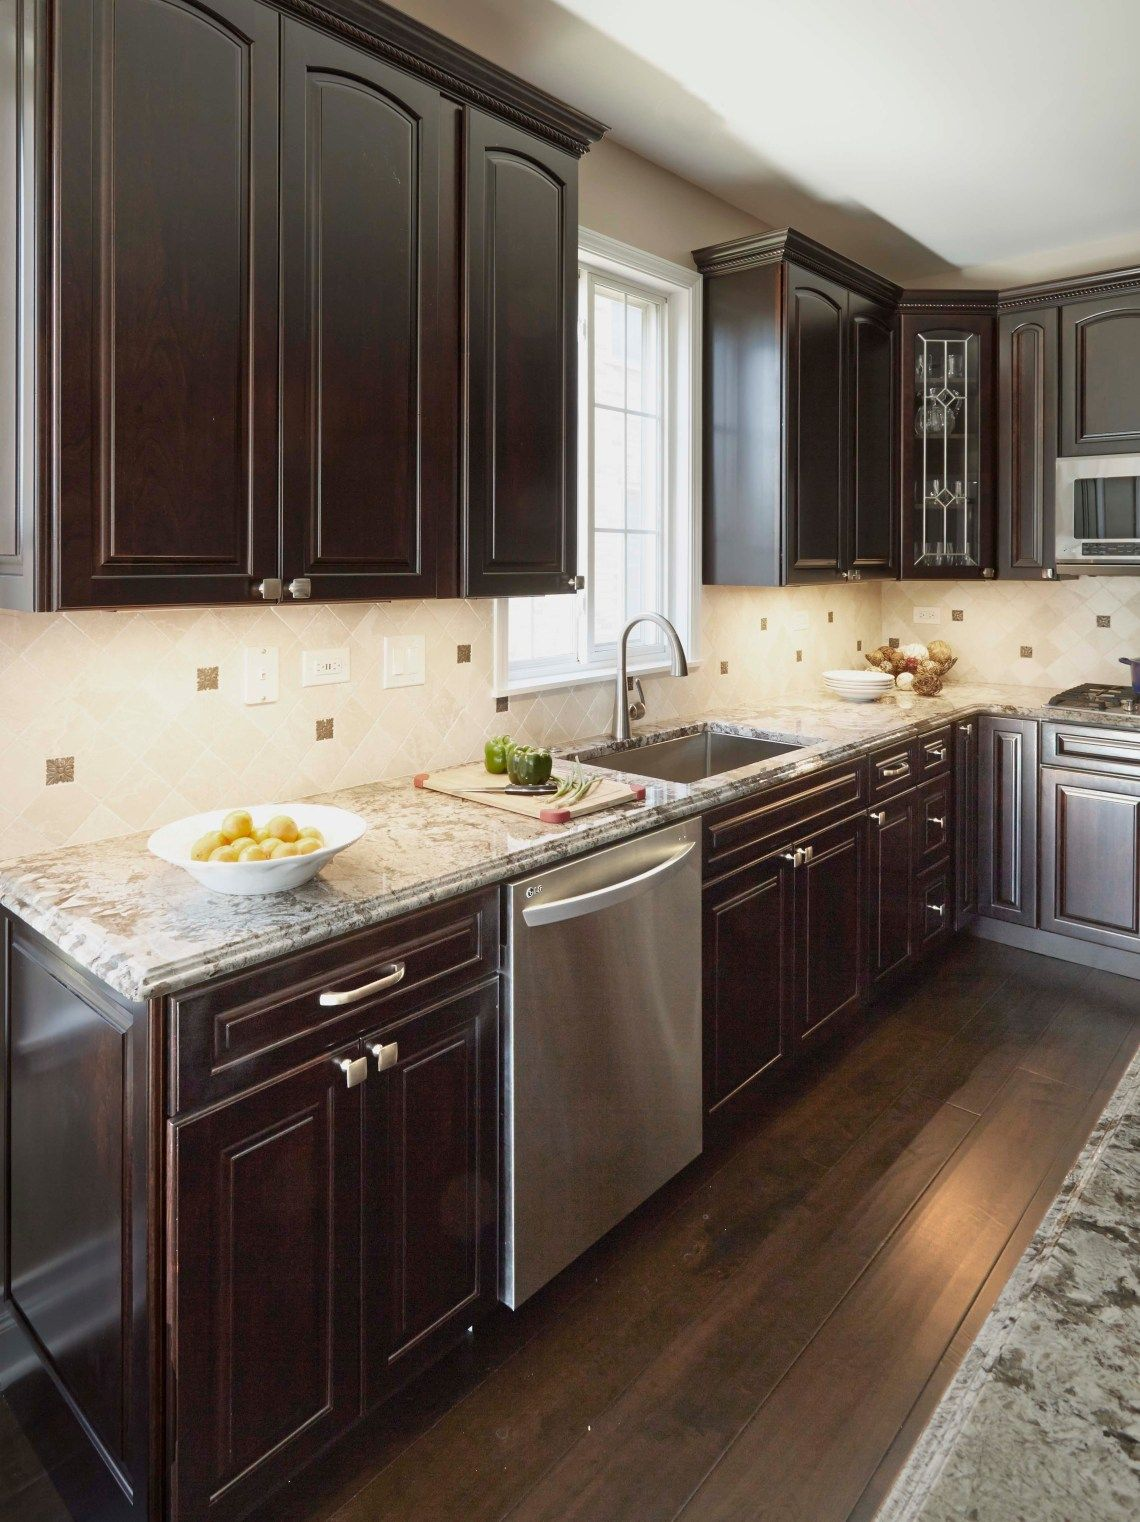 Hampton Bay Of Home Depot Kitchen Cabinets Decoration For House Oak Kitchen Cabinets Wall Color Home Depot Kitchen Kitchen Cabinet Styles